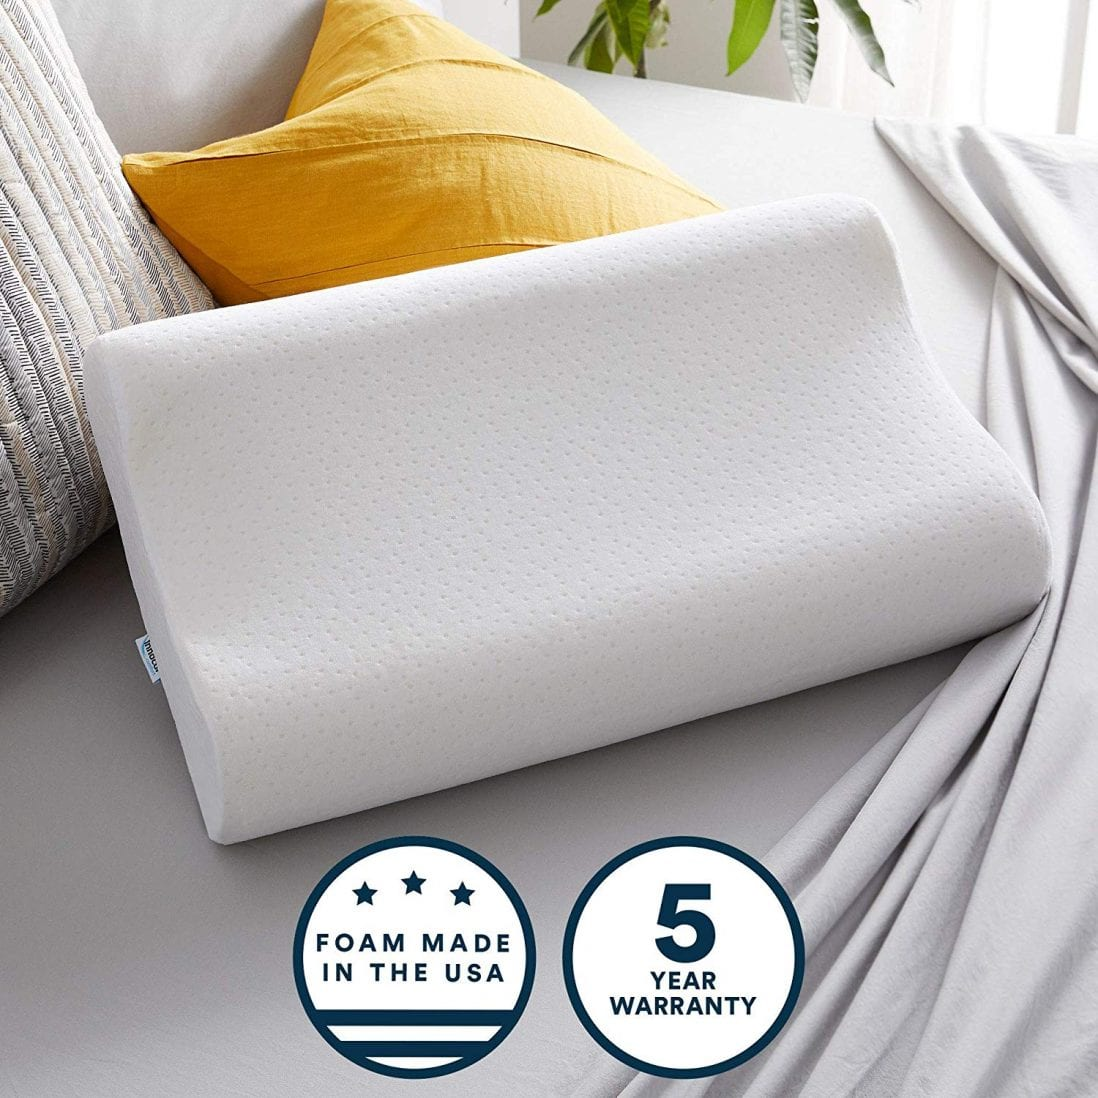 Sleep Innovations Best Hypoallergenic Pillows review by www.dailysleep.org